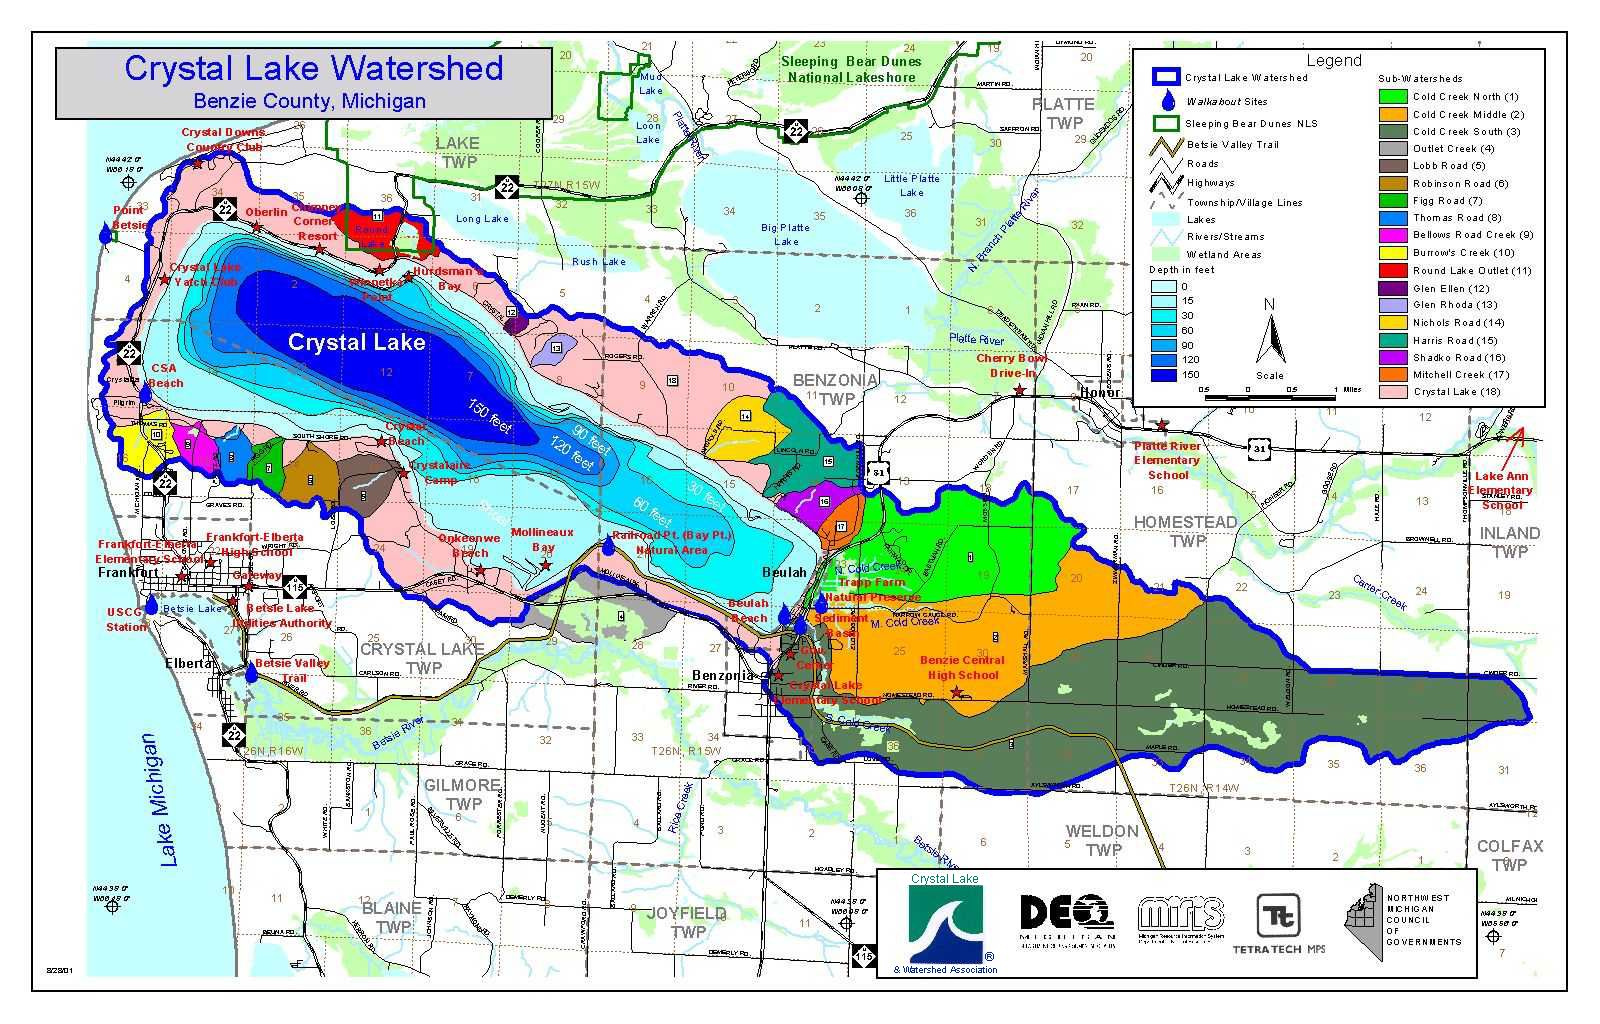 Michigan benzie county benzonia - Section 24 2 Watershed Overlay District